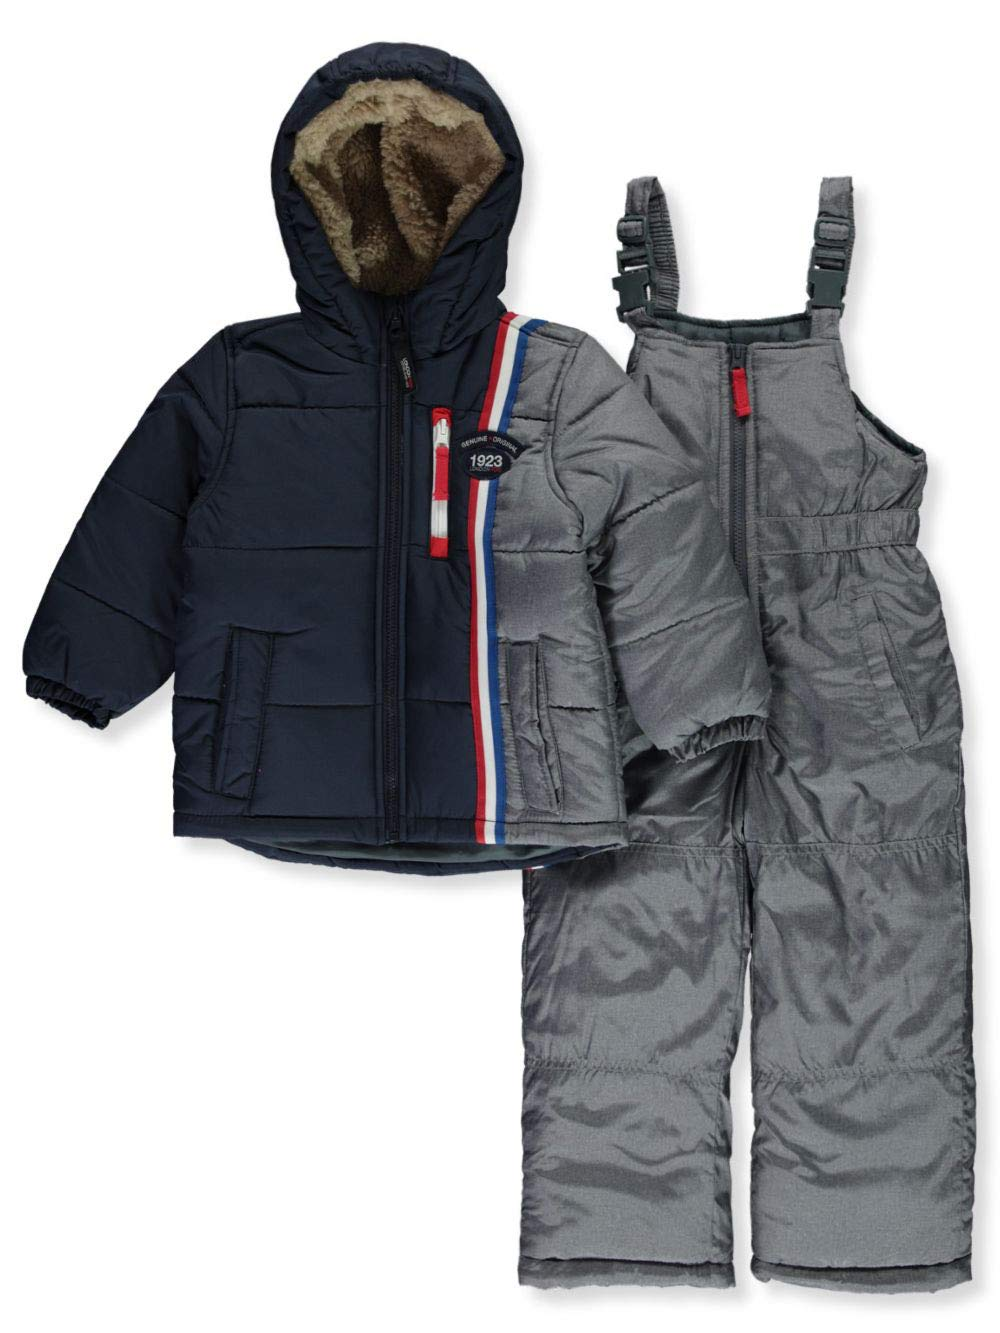 London Fog Boys' Toddler 2-Piece Snow Pant & Jacket Snowsuit, Navy Solid, 3T by London Fog